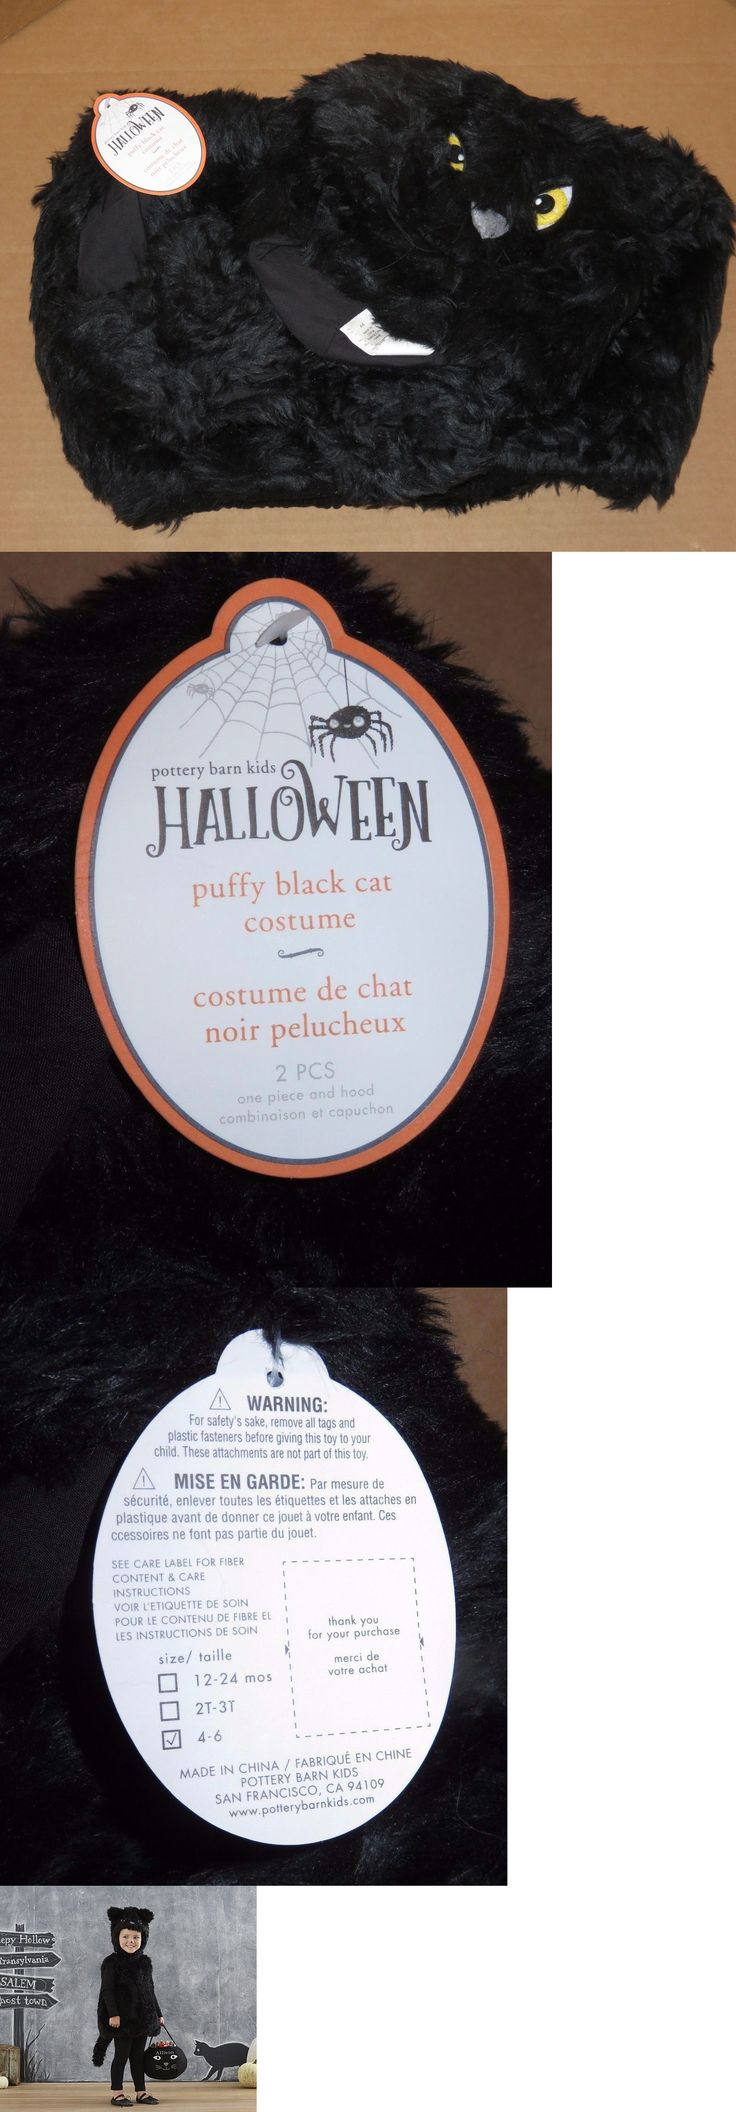 Halloween Costumes Kids: Nwt 2Pc Pottery Barn Kids Toddler Puffy Black Cat Halloween Costume 4-6 Year New -> BUY IT NOW ONLY: $54.5 on eBay!